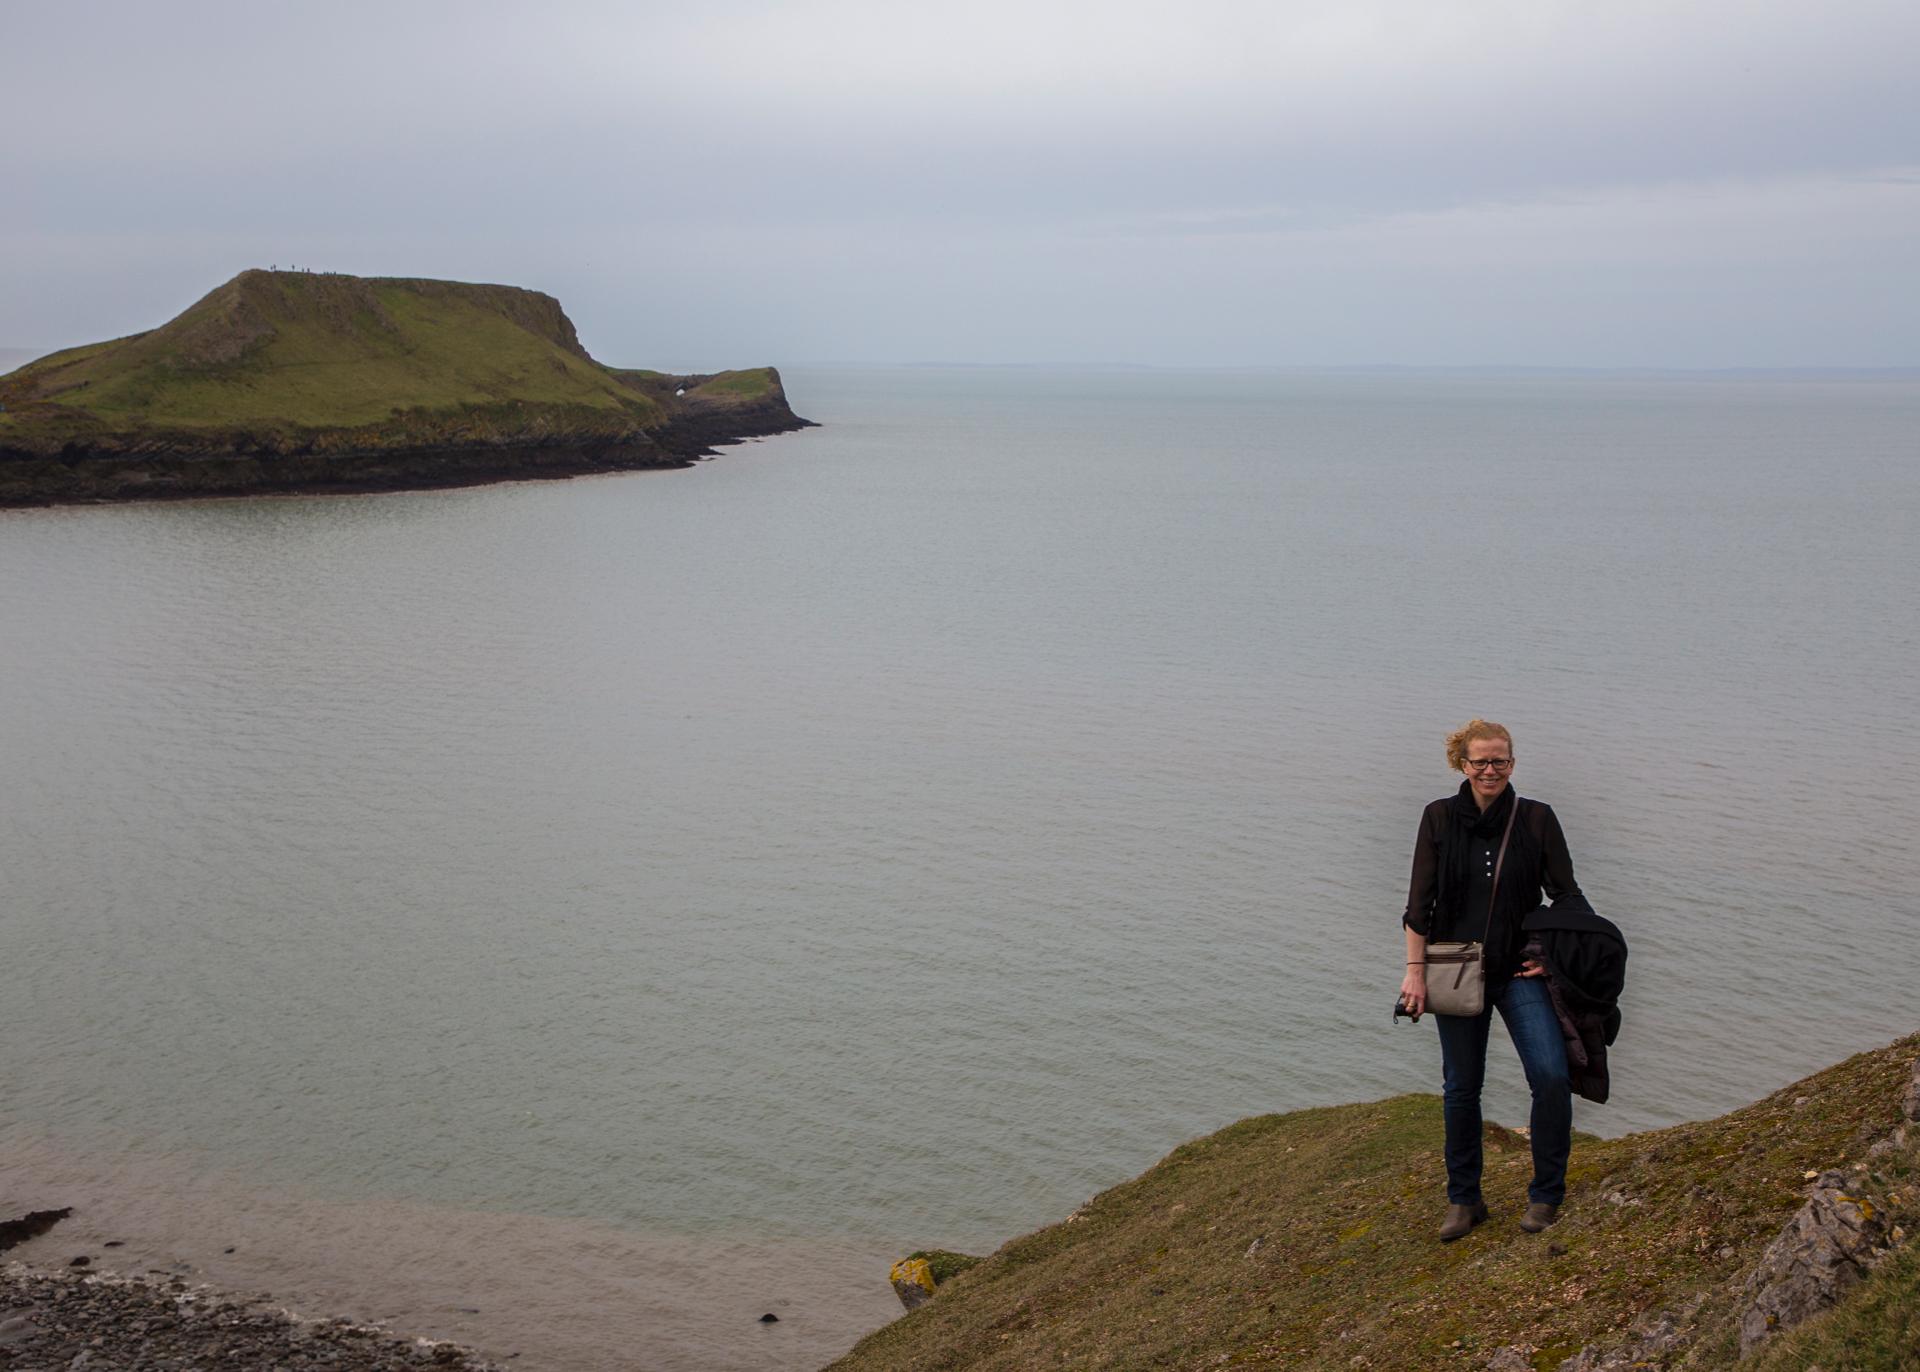 On the way back from the island, we hiked up high to get a view of the sea arch, which you can just see out in the distance on Worm's Head.